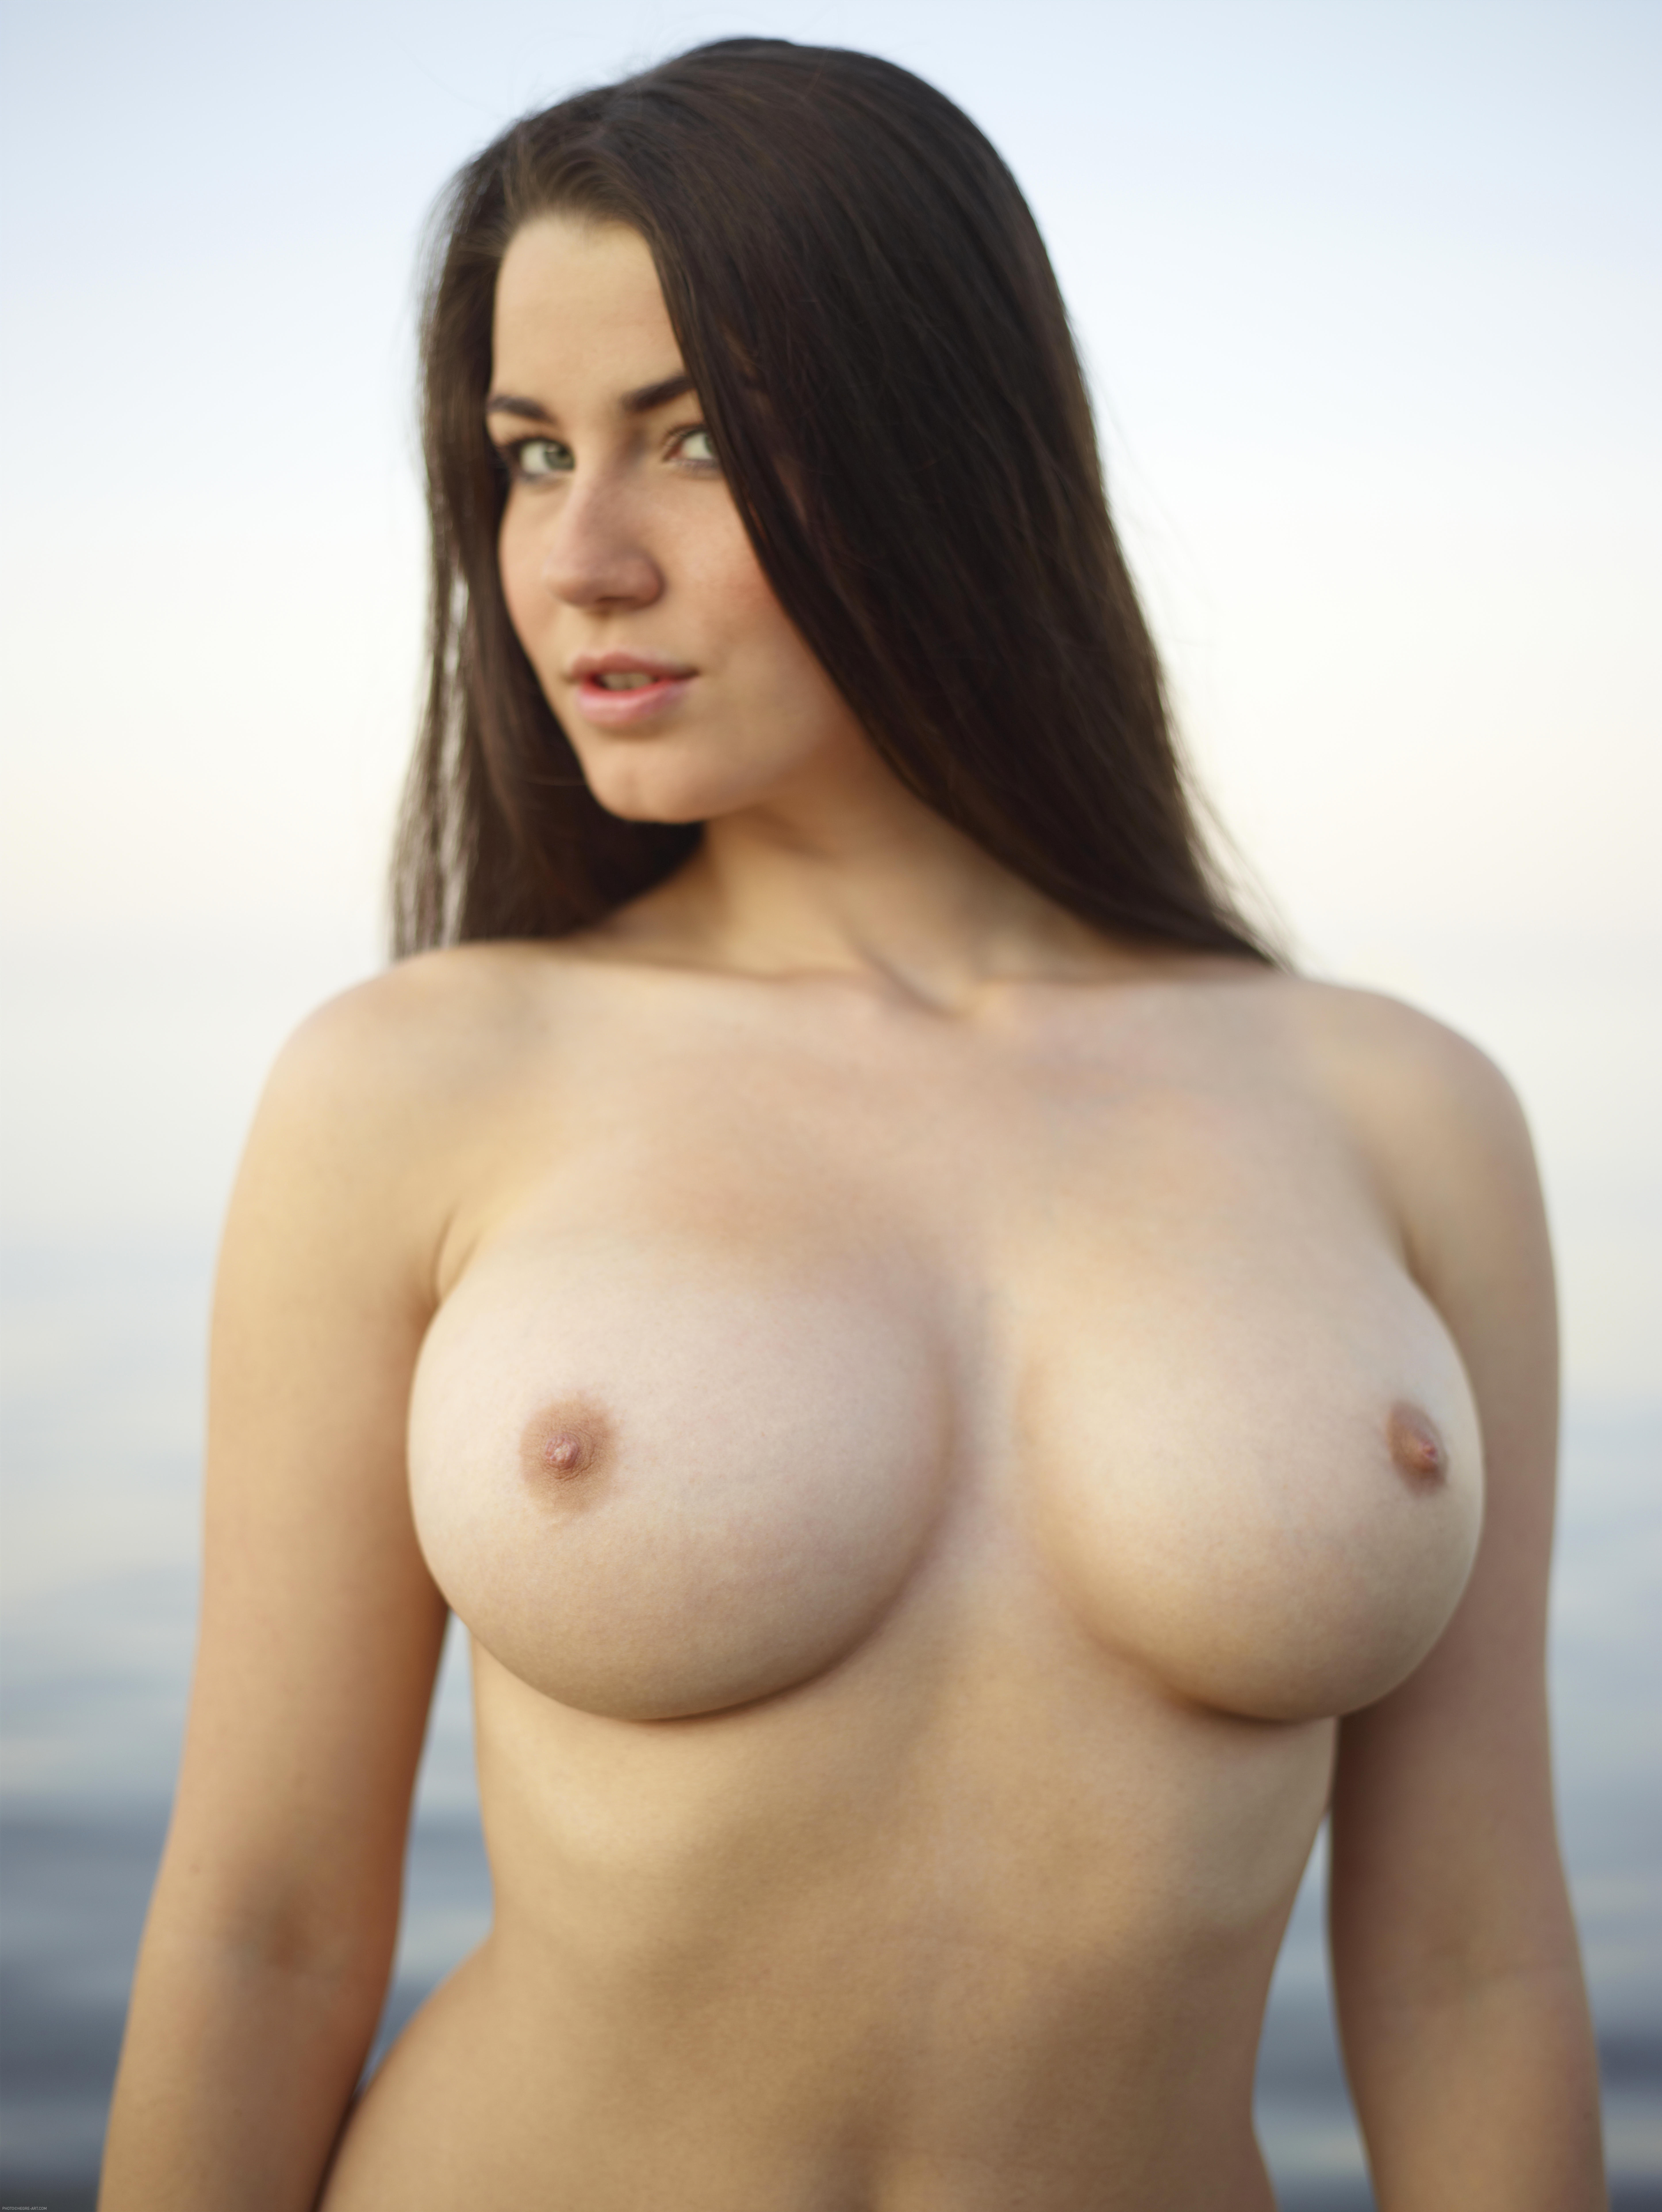 Hot Супер Perfect boobs nude pair! remarkably